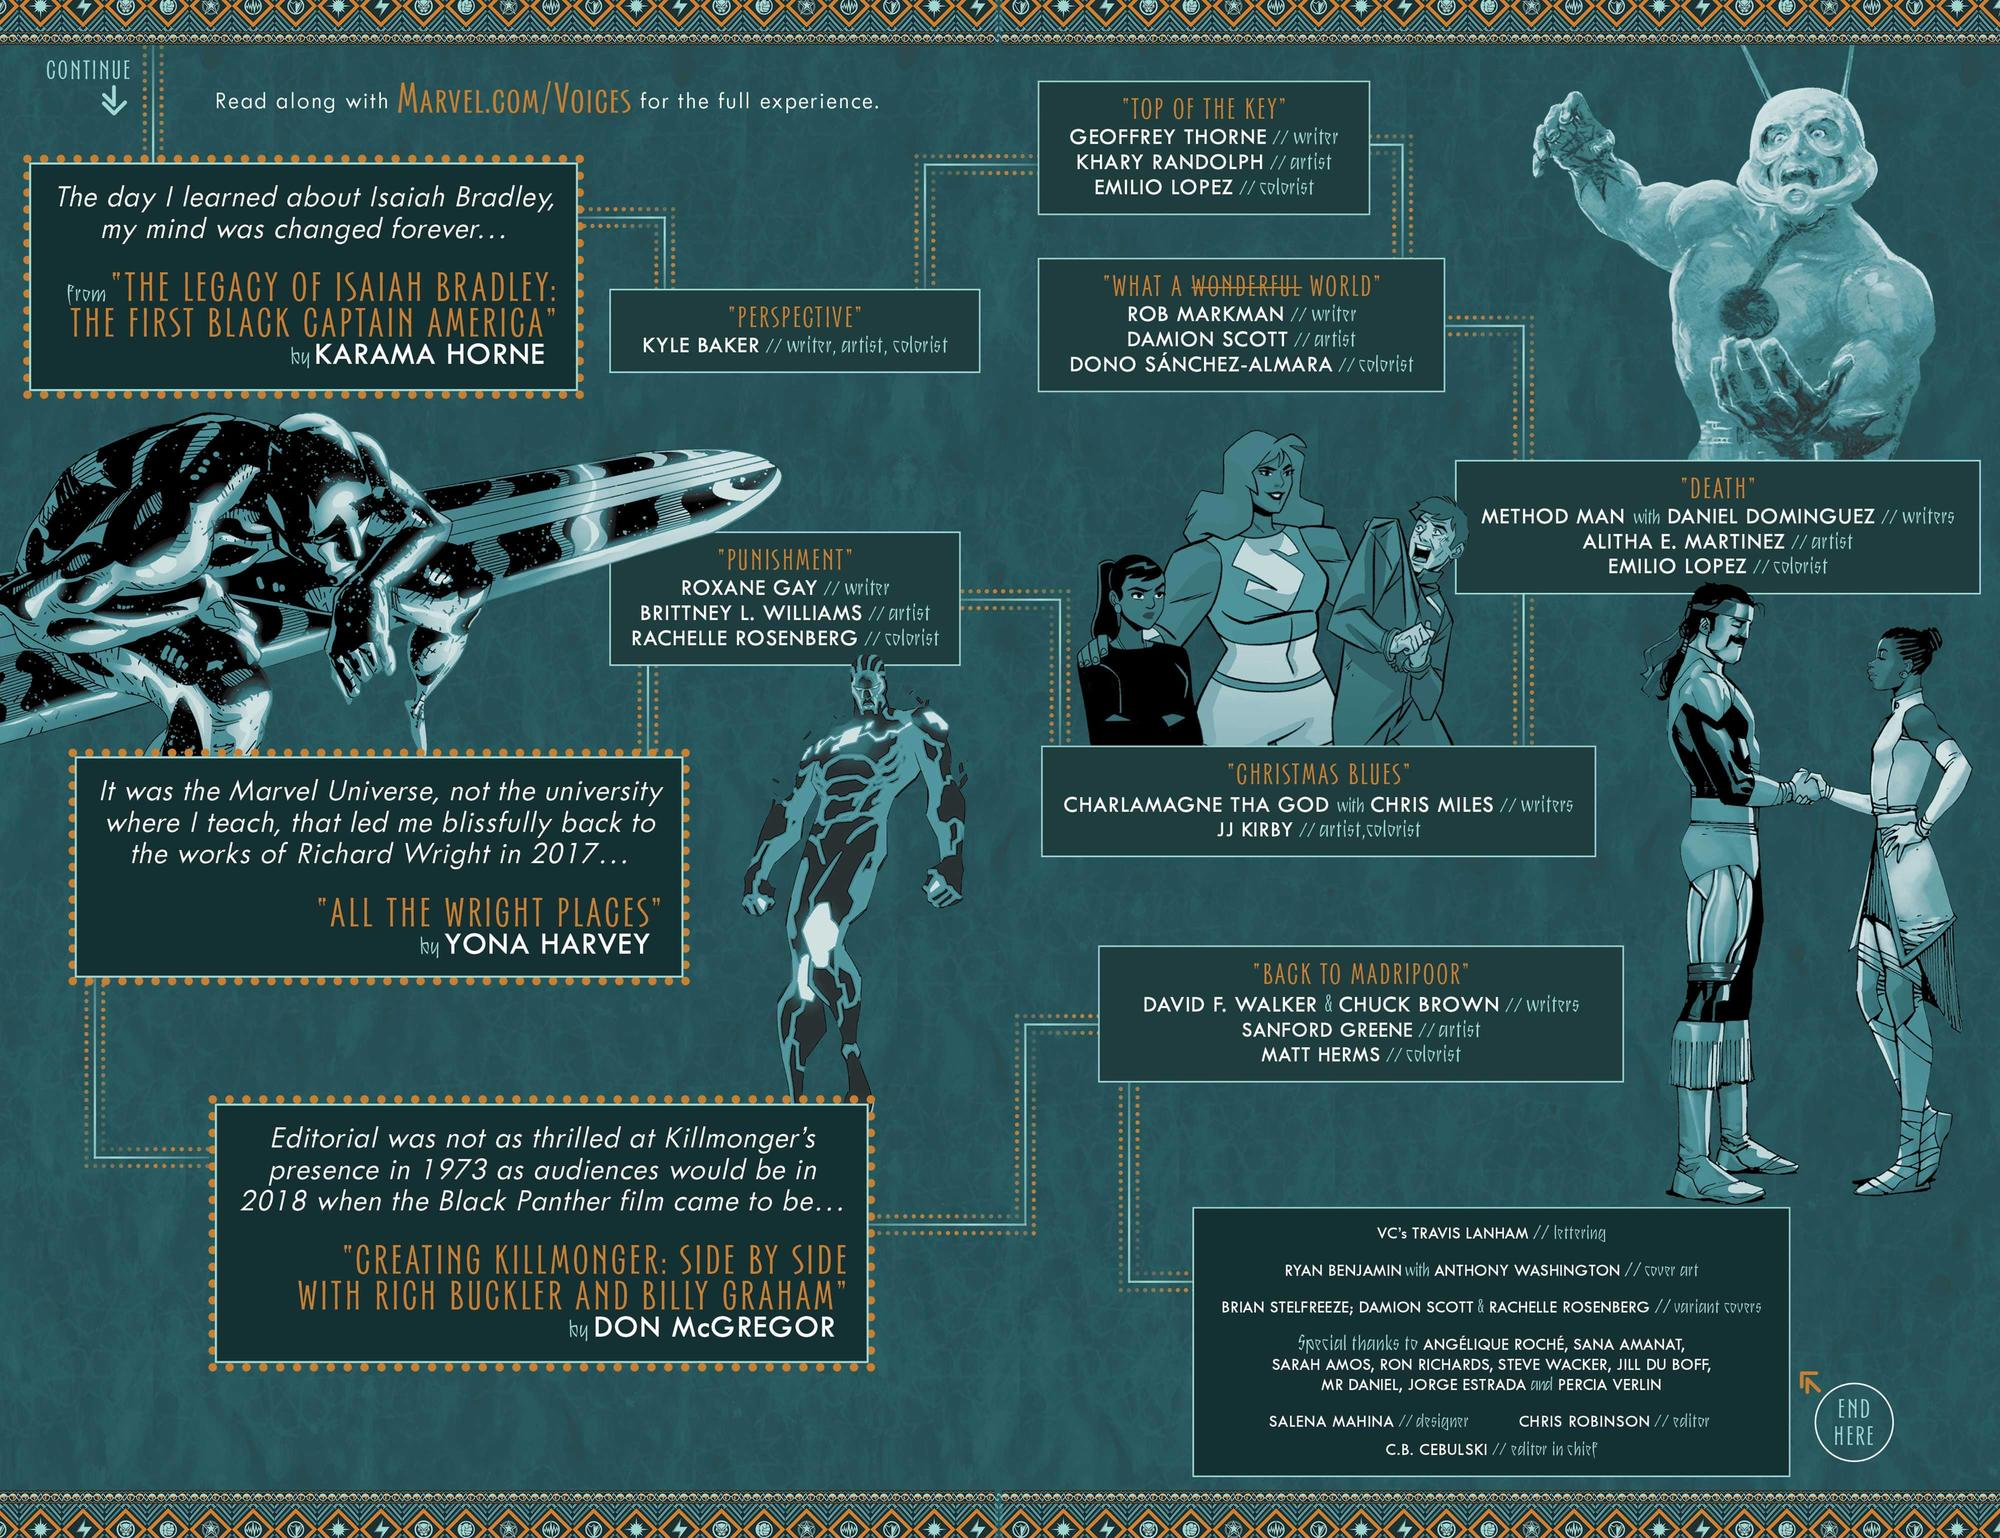 Marvel's Voices infographic 2